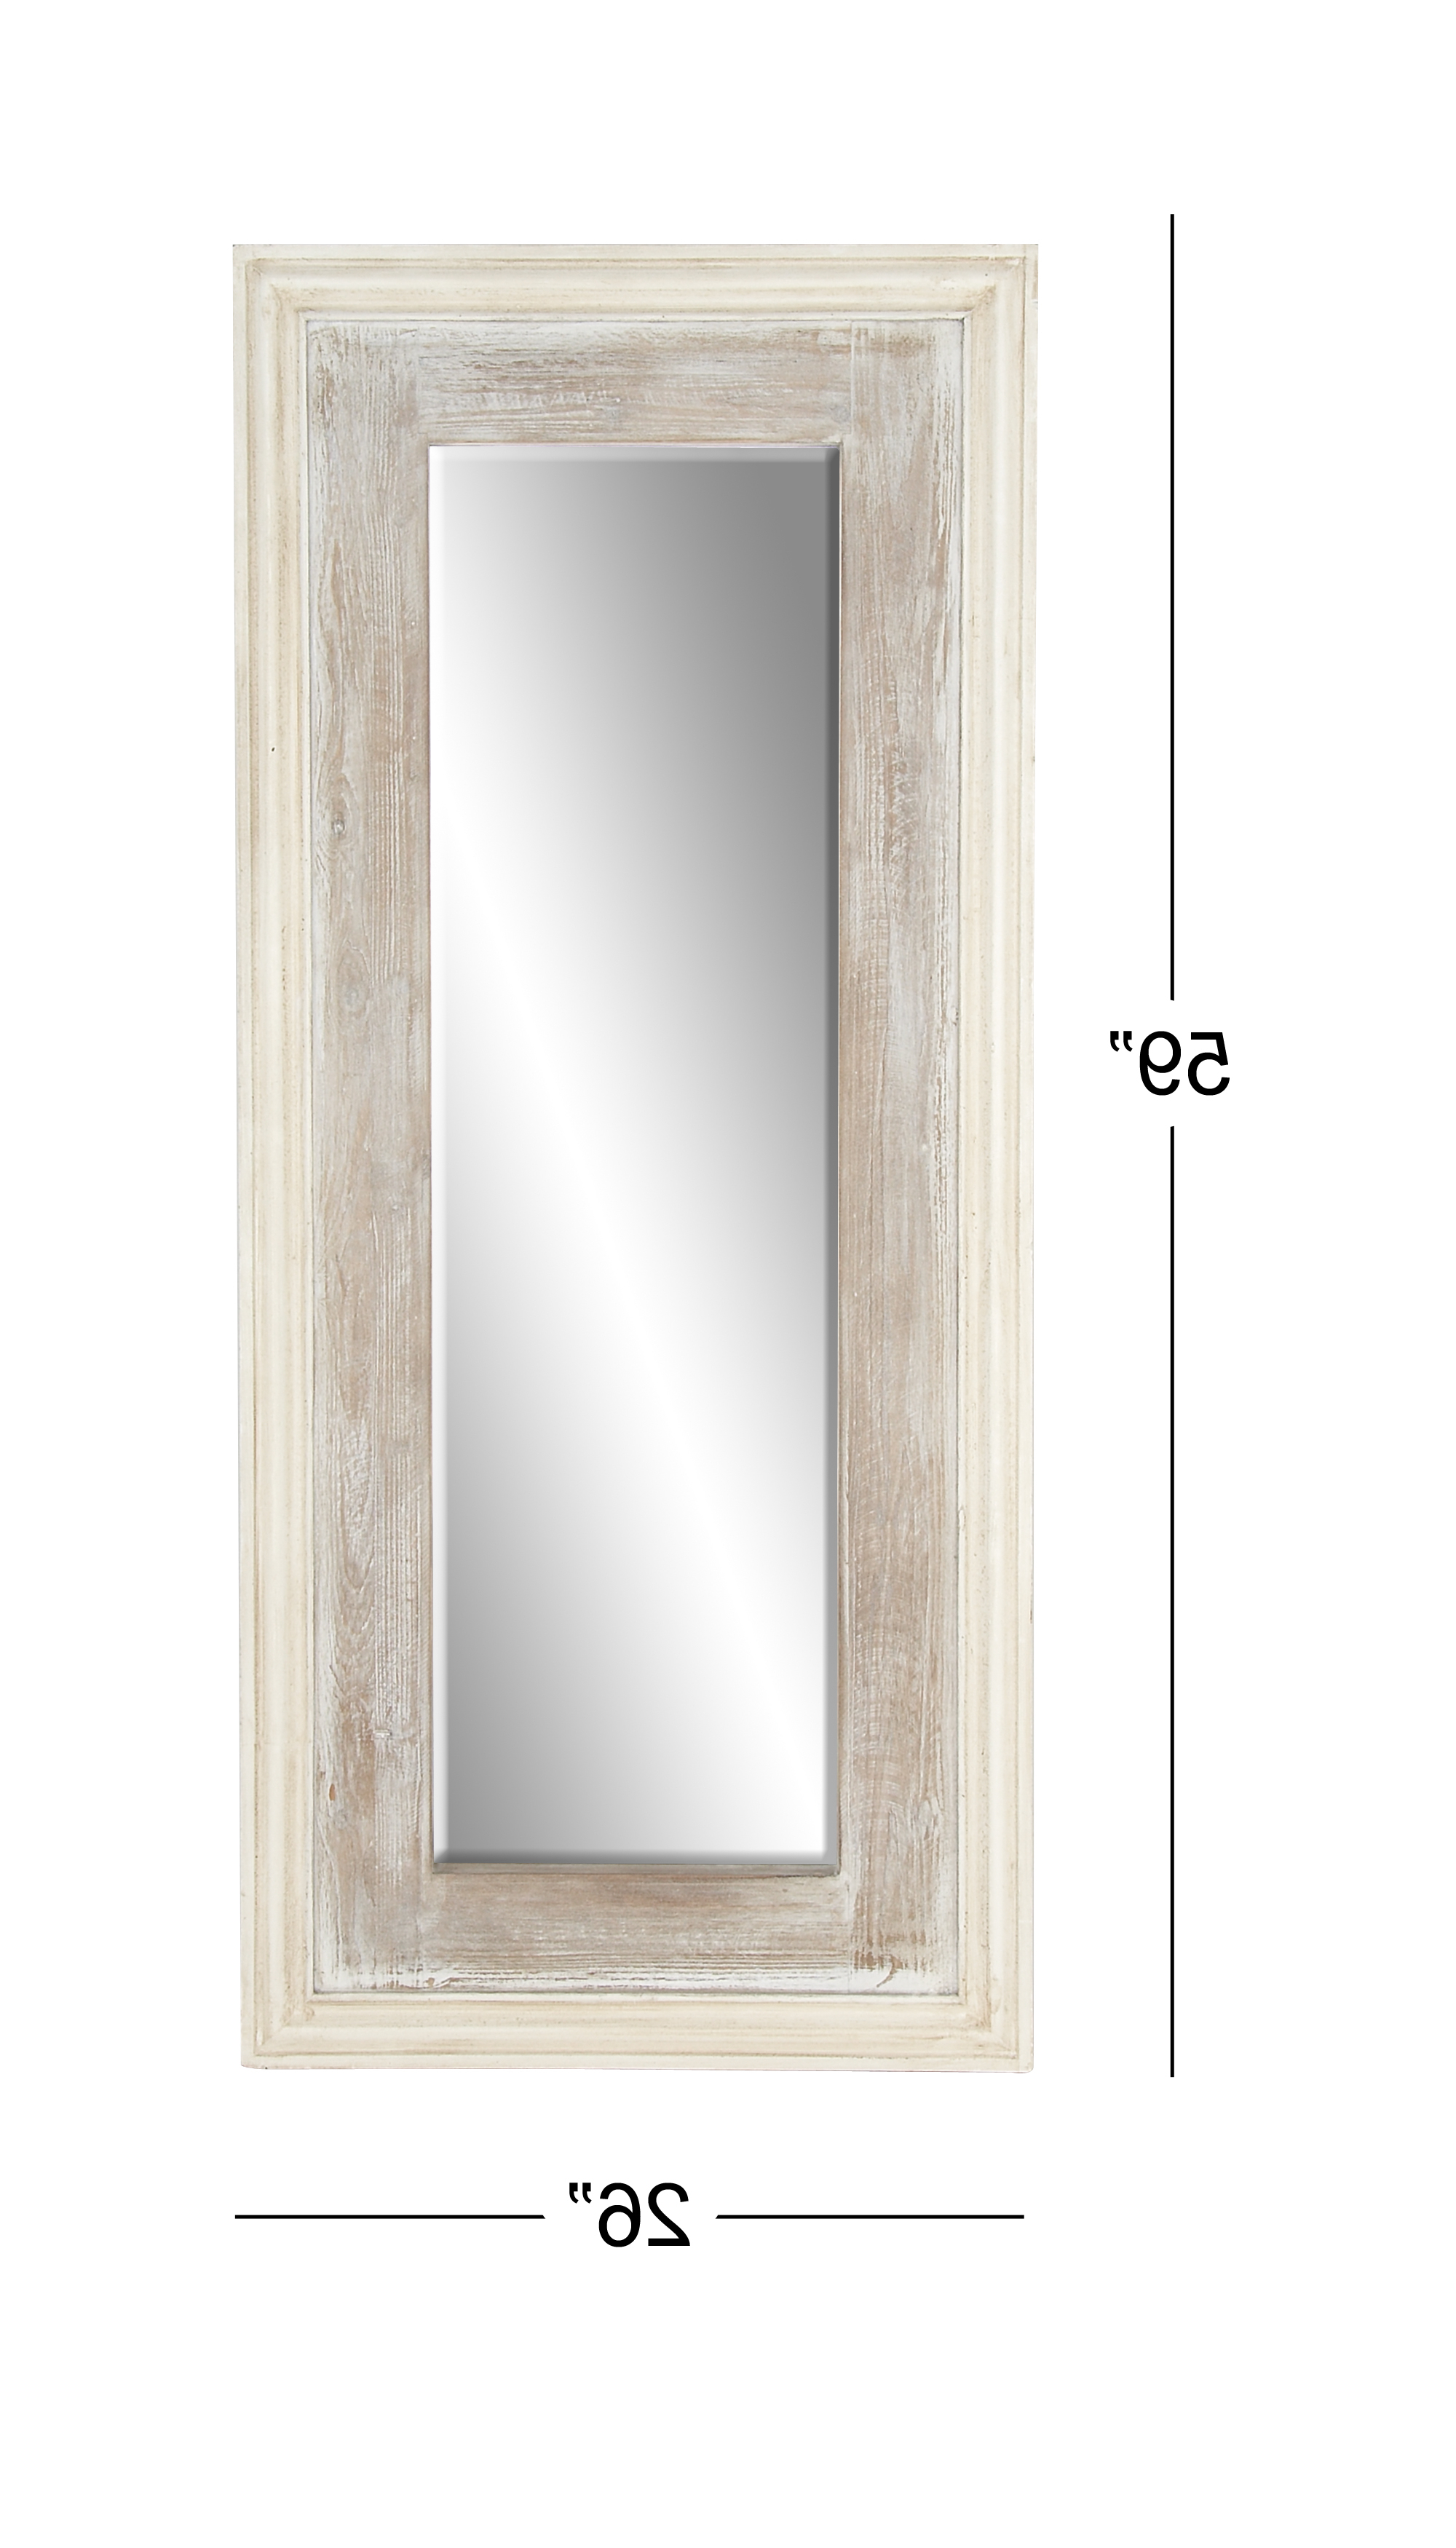 Most Recent White Full Length Wall Mirrors For Decmode Rustic Fir And Pine Wood Full Length White Wall Mirror, White (View 11 of 20)